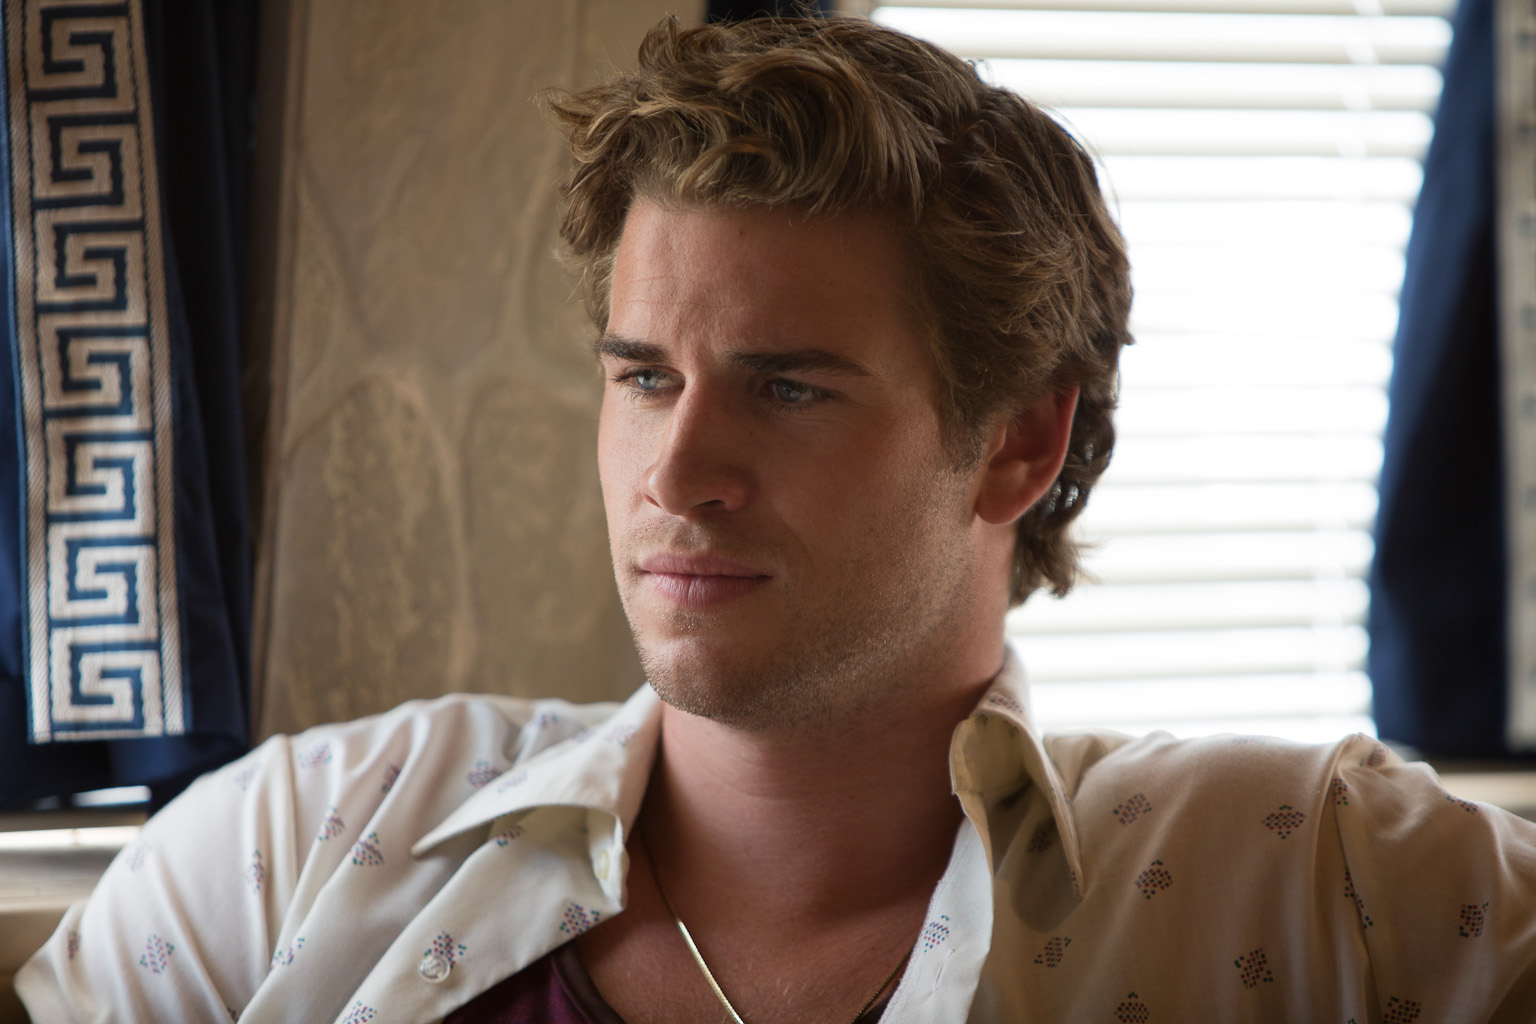 Liam Hemsworths got moves choreographed moves as do a few of his costars in their upcoming romantic comedy Liam was spotted dancing in front of a